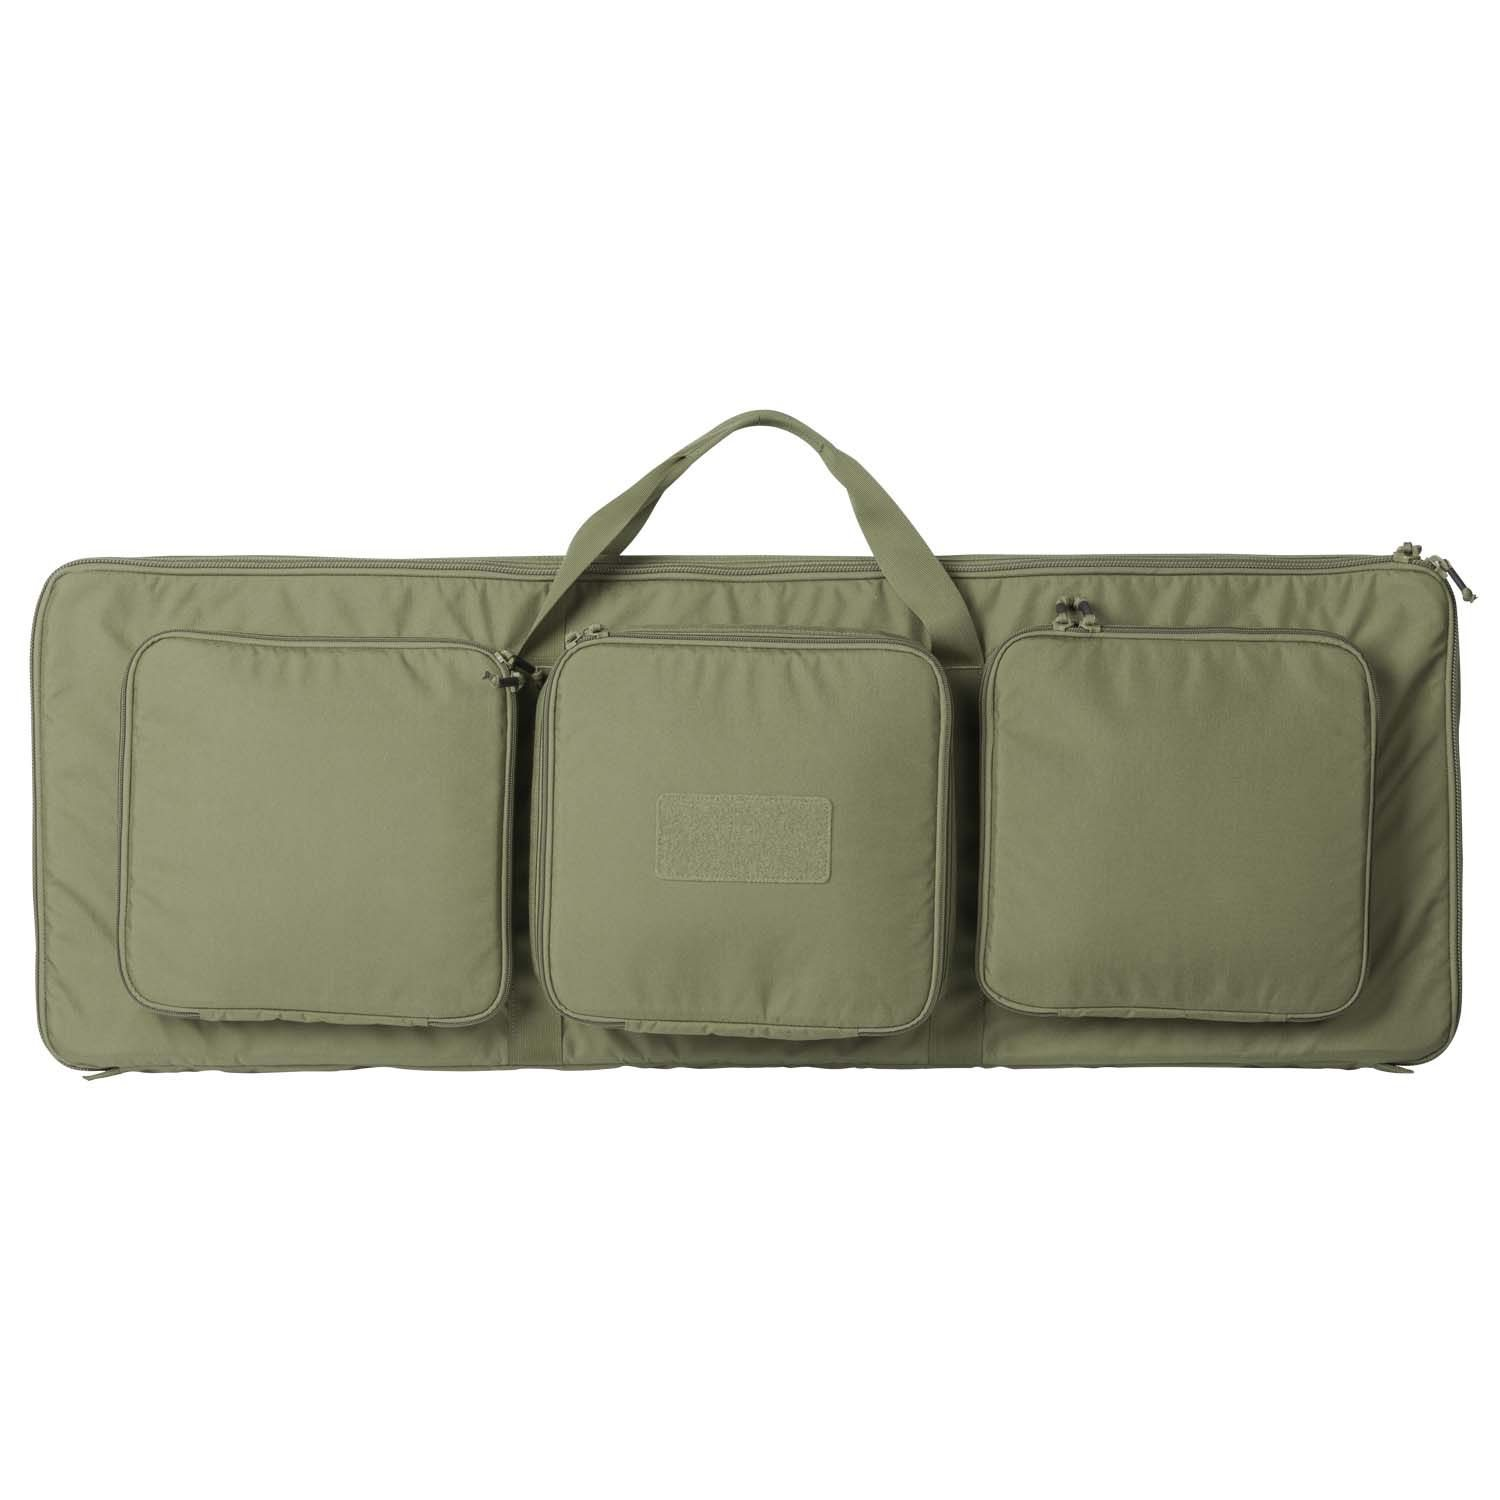 Puzdro na pušku RIFLE BAG 18® OLIVE GREEN